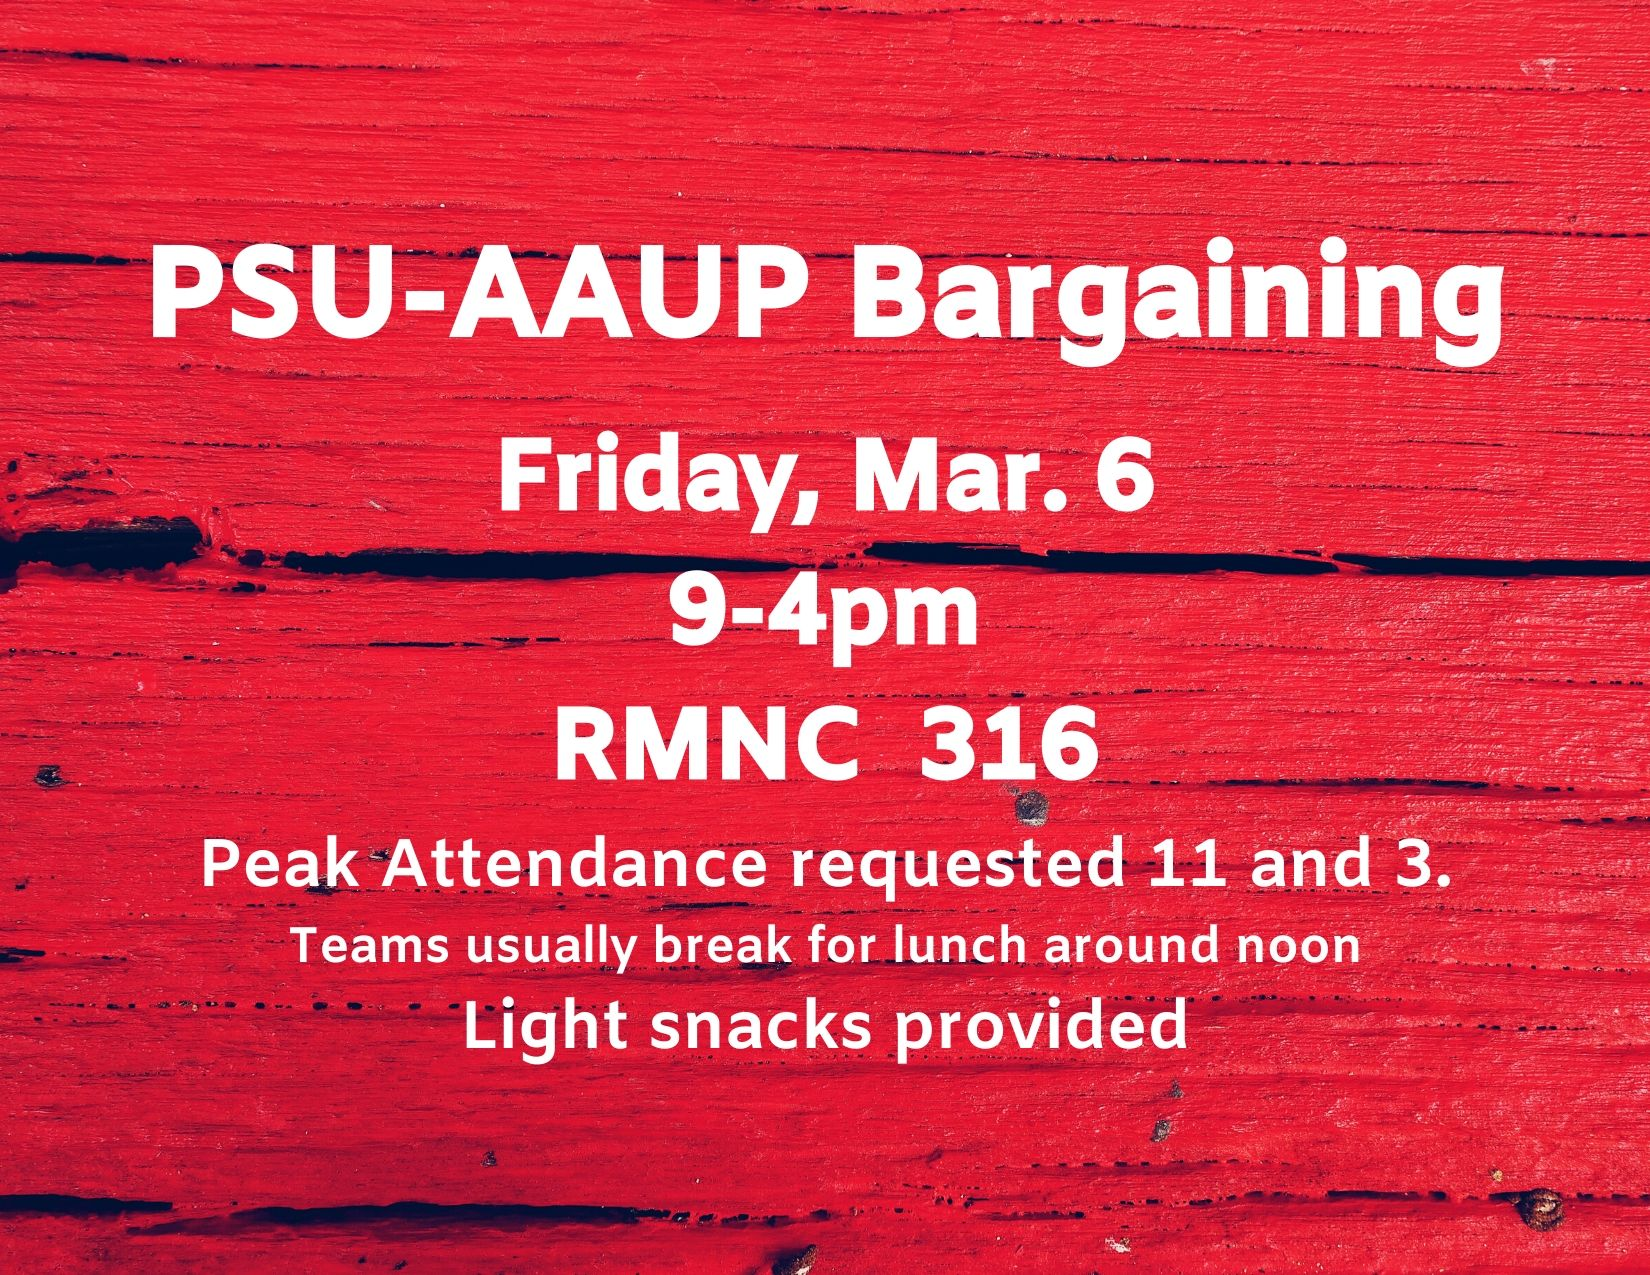 PSU-AAUP Bargaining - March 6